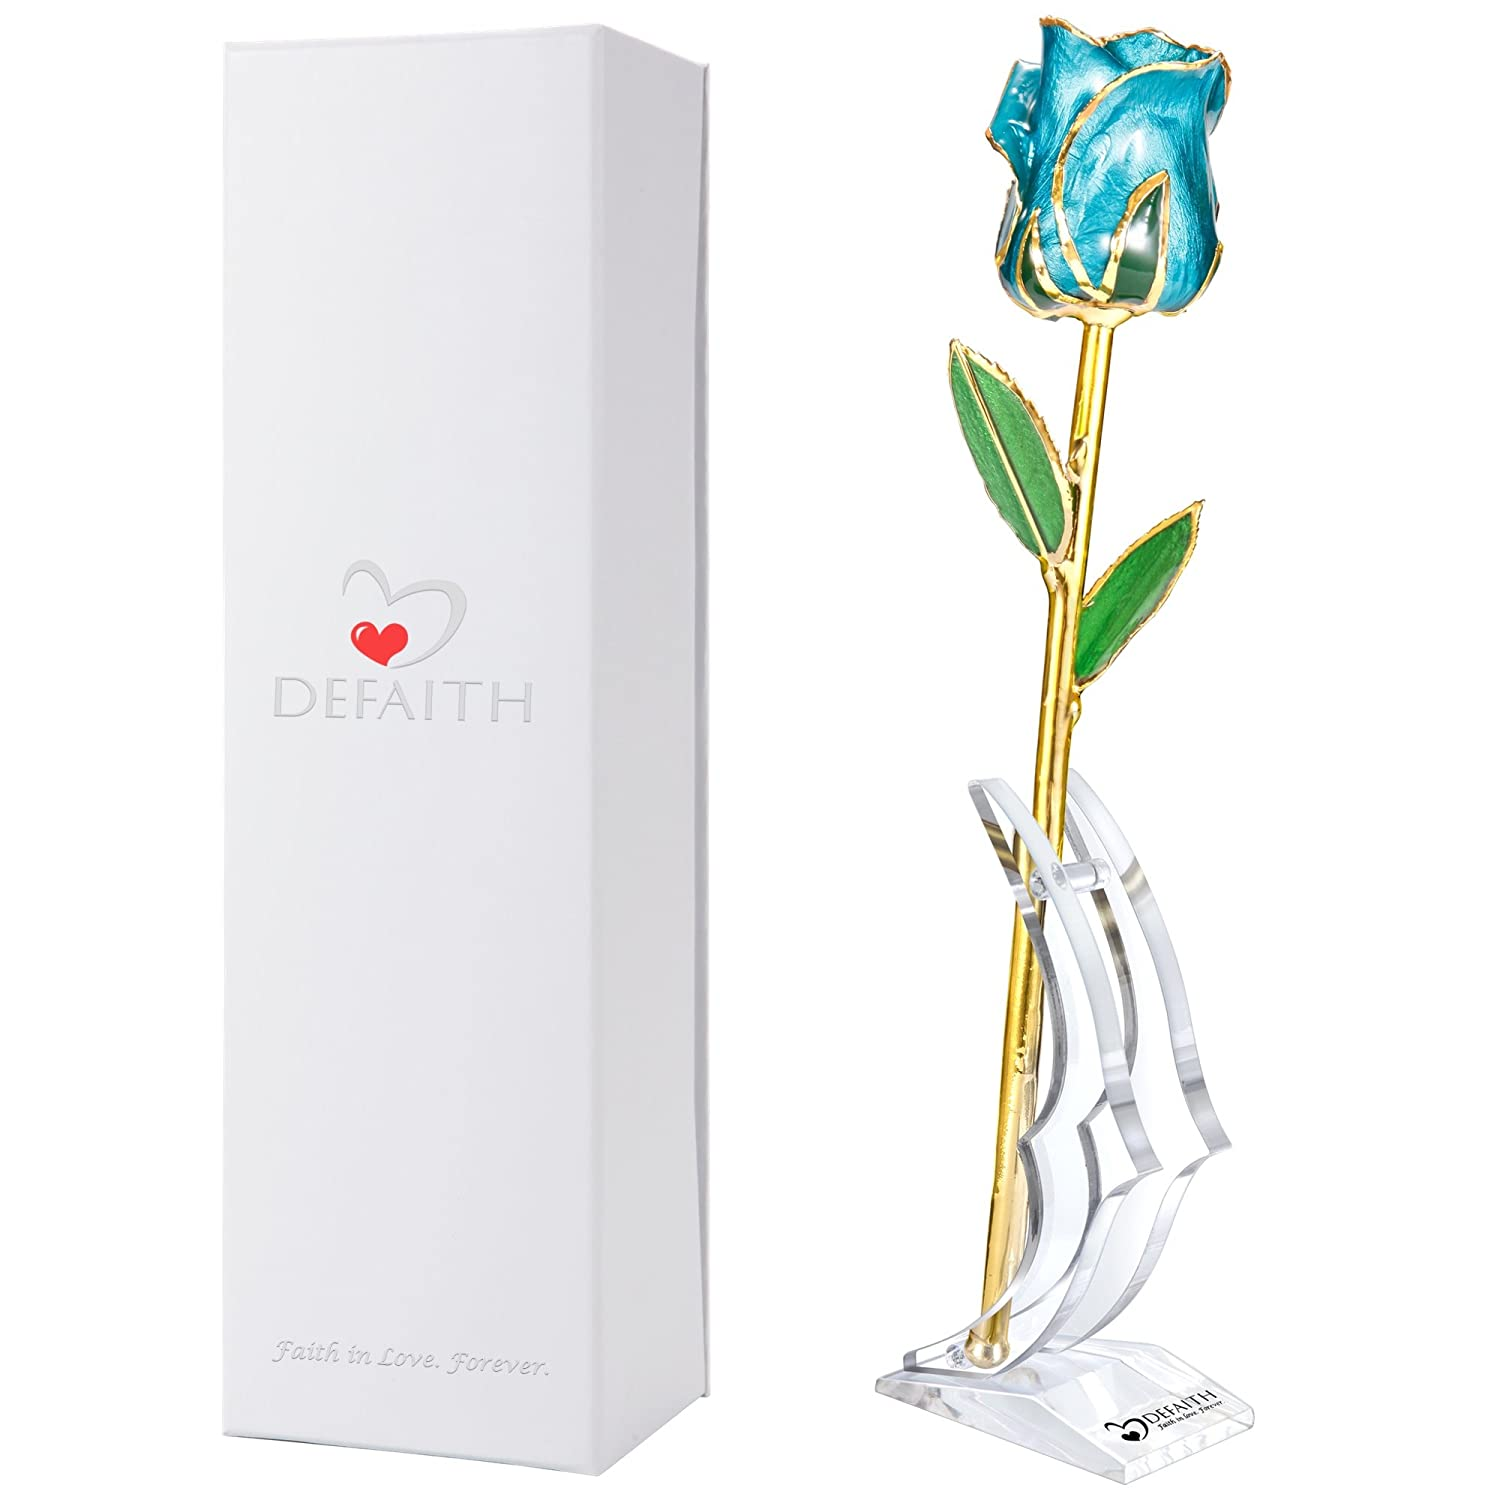 (Original Fresh Cut Rose Dipped in Gold - Pearl Teal Blue) - DeFaith Original 24K Gold Rose, Unique Anniversary Gifts for Mother Her Women Wife Girlfriend, Made from Real Fresh-Cut Rose with Stand - Pearl Teal Blue B078ZTB1QP Original Fresh Cut Rose Dipped in Gold - Pearl Teal Blue